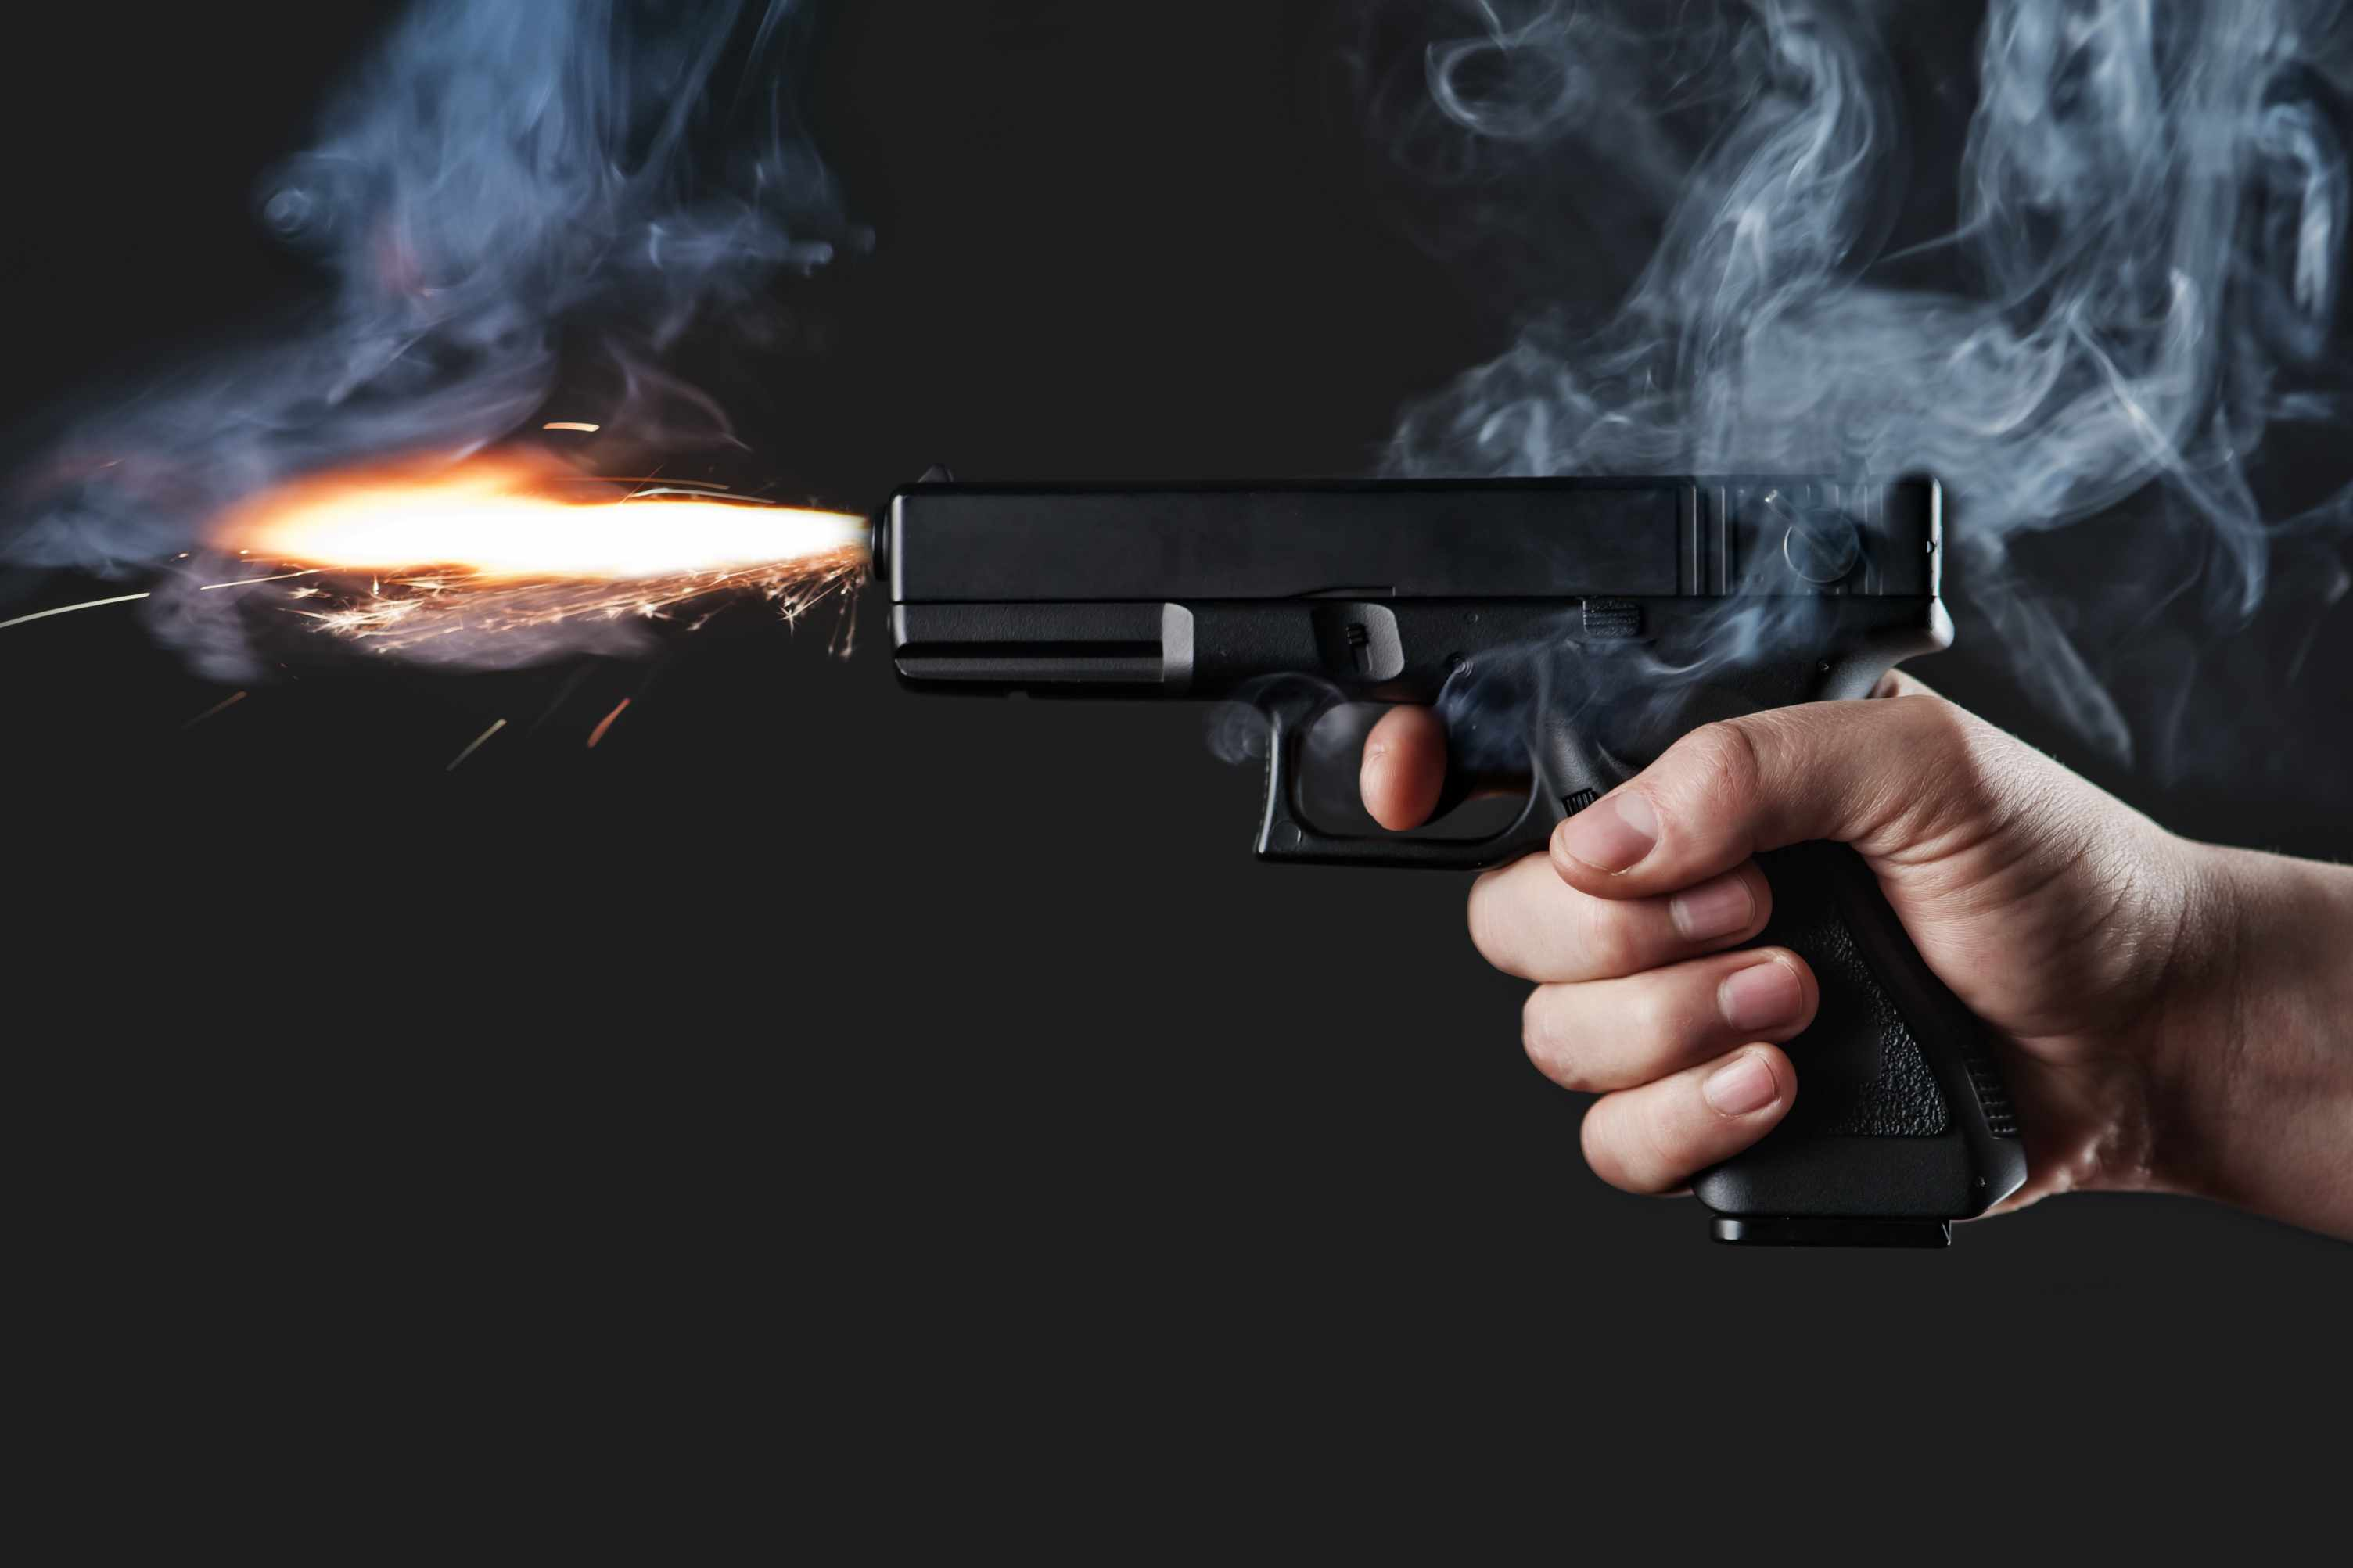 How fast does a bullet accelerate as it leaves a gun barrel? © Getty Images